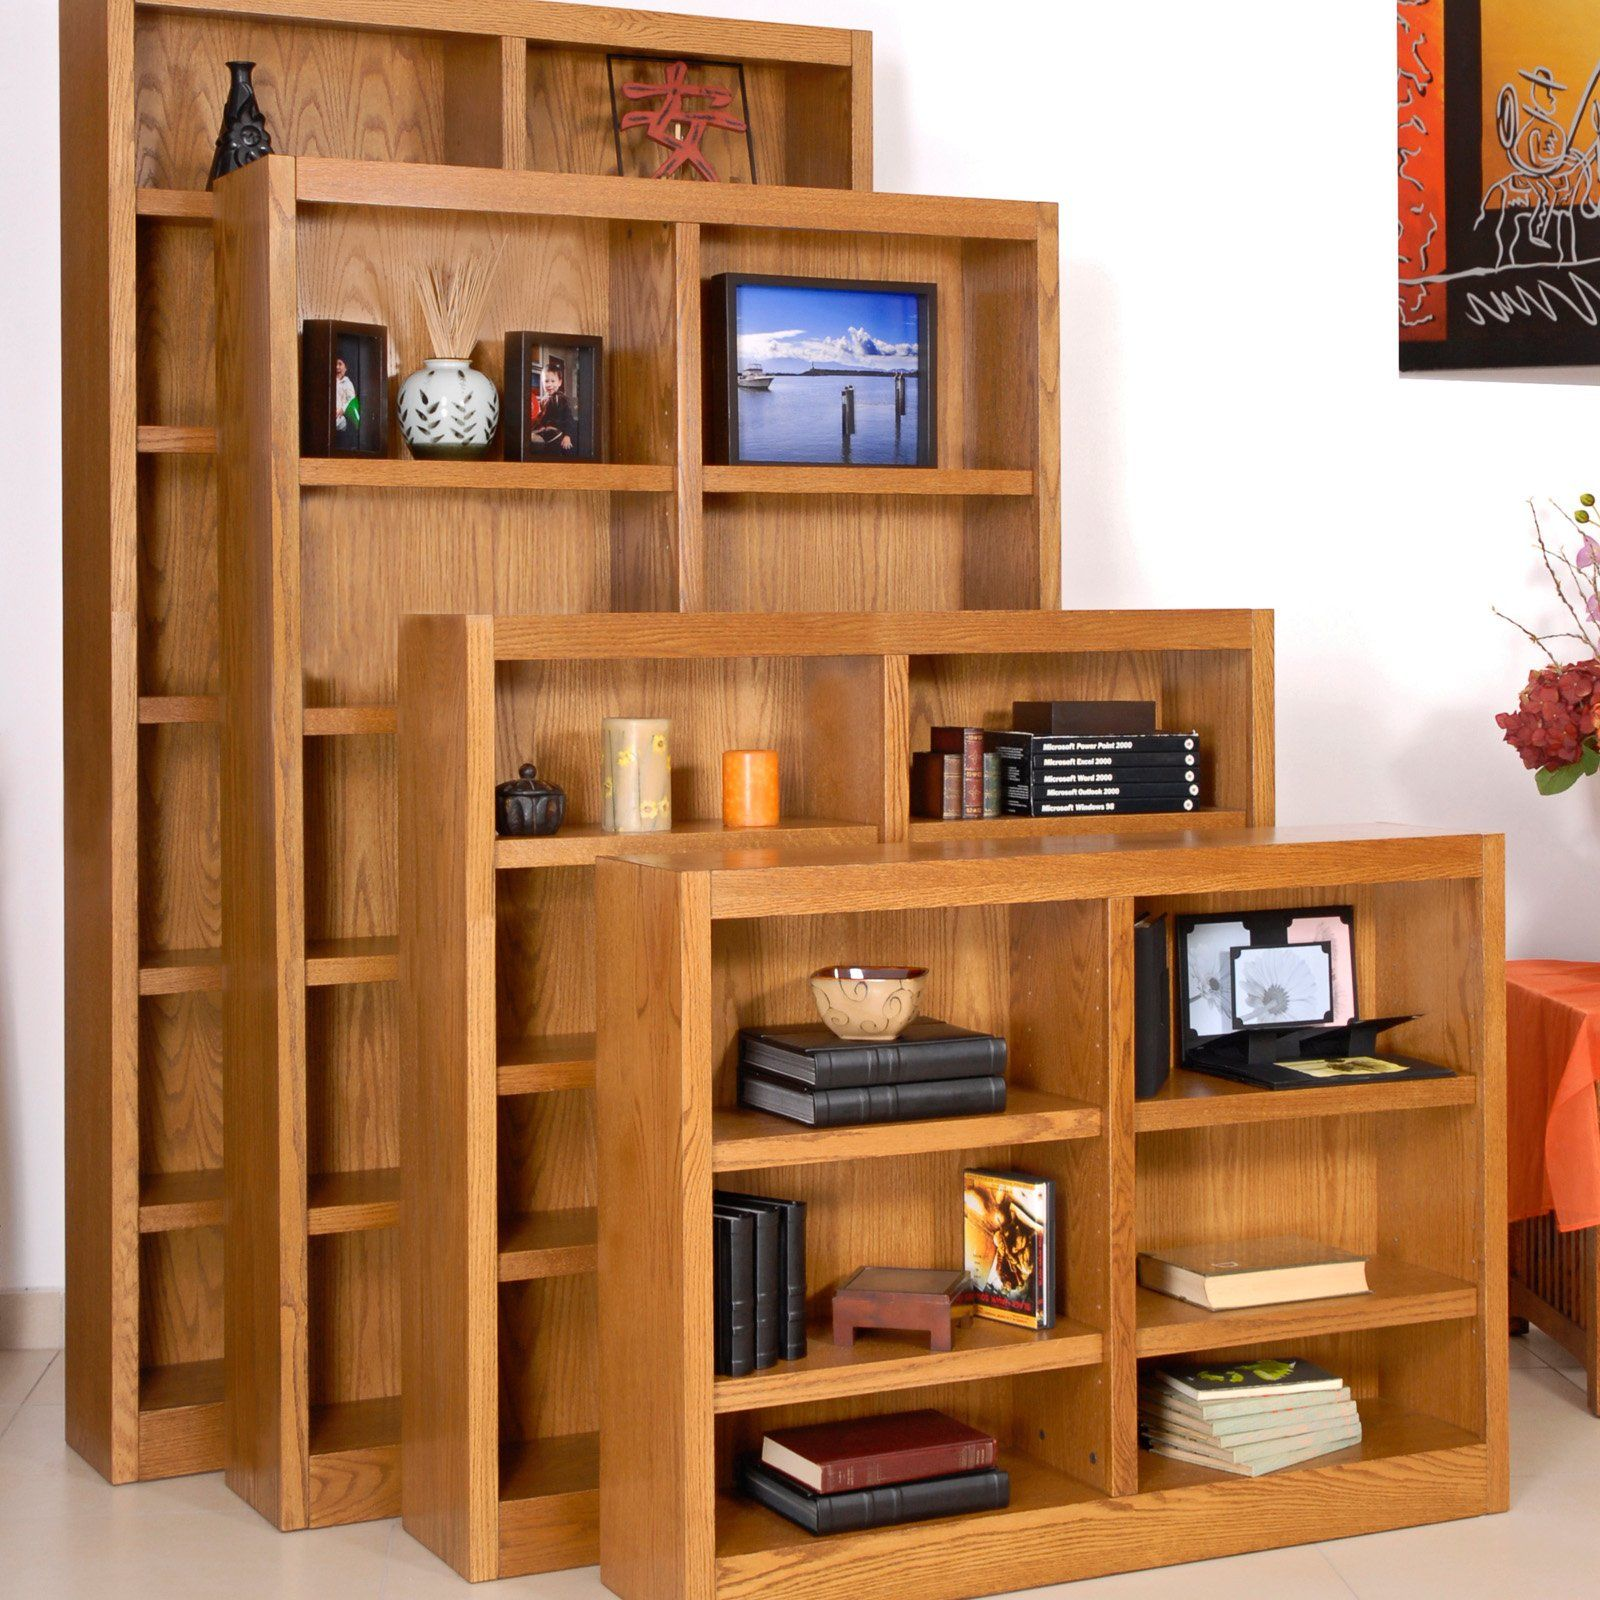 Concepts In Wood Double Wide Veneer Bookcase Red Oak